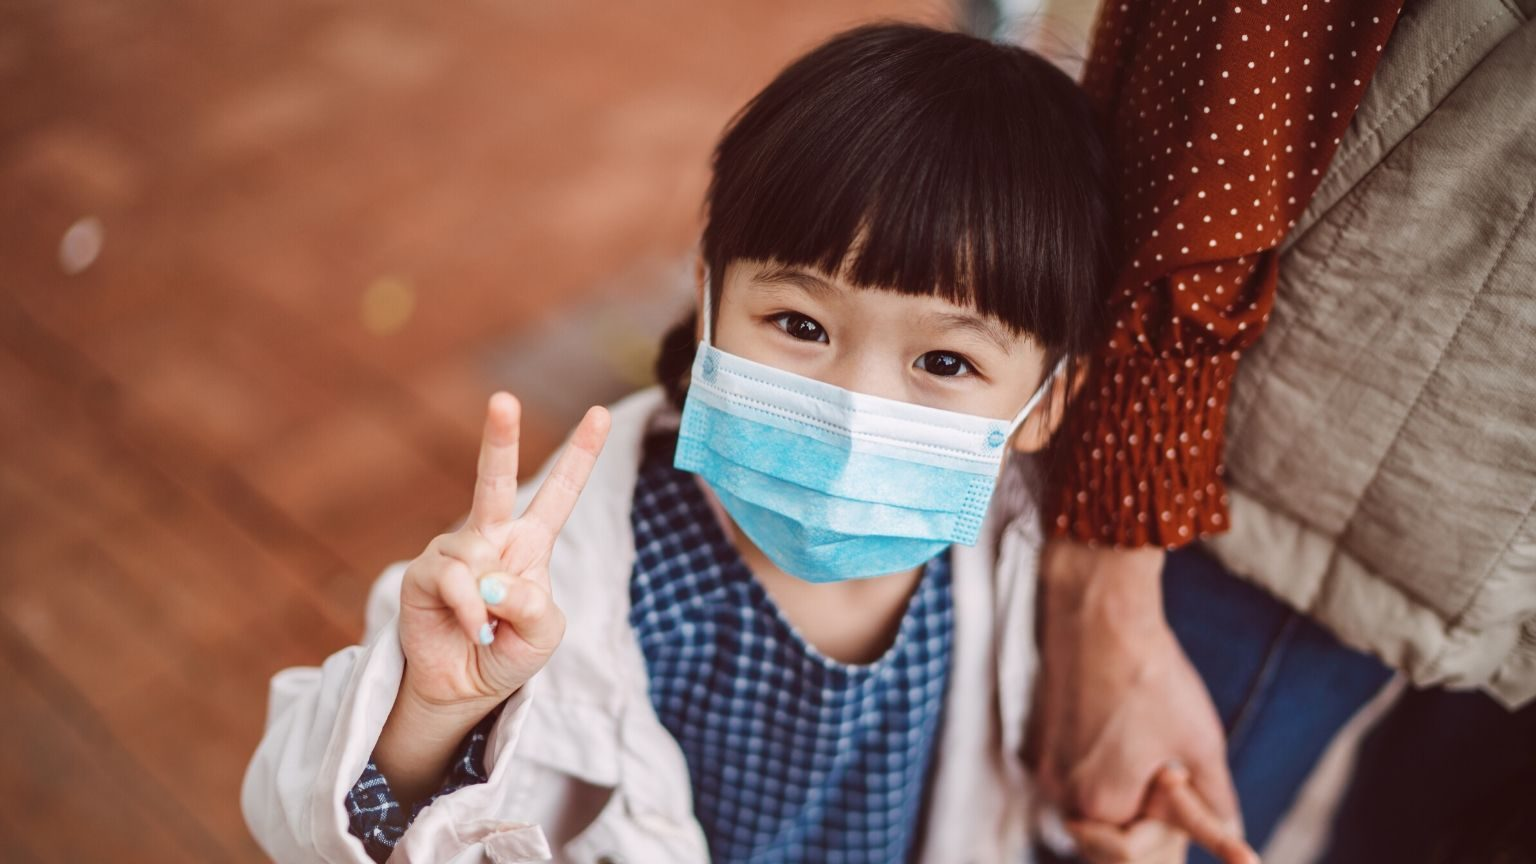 Little girl wearing face mask making peace sign